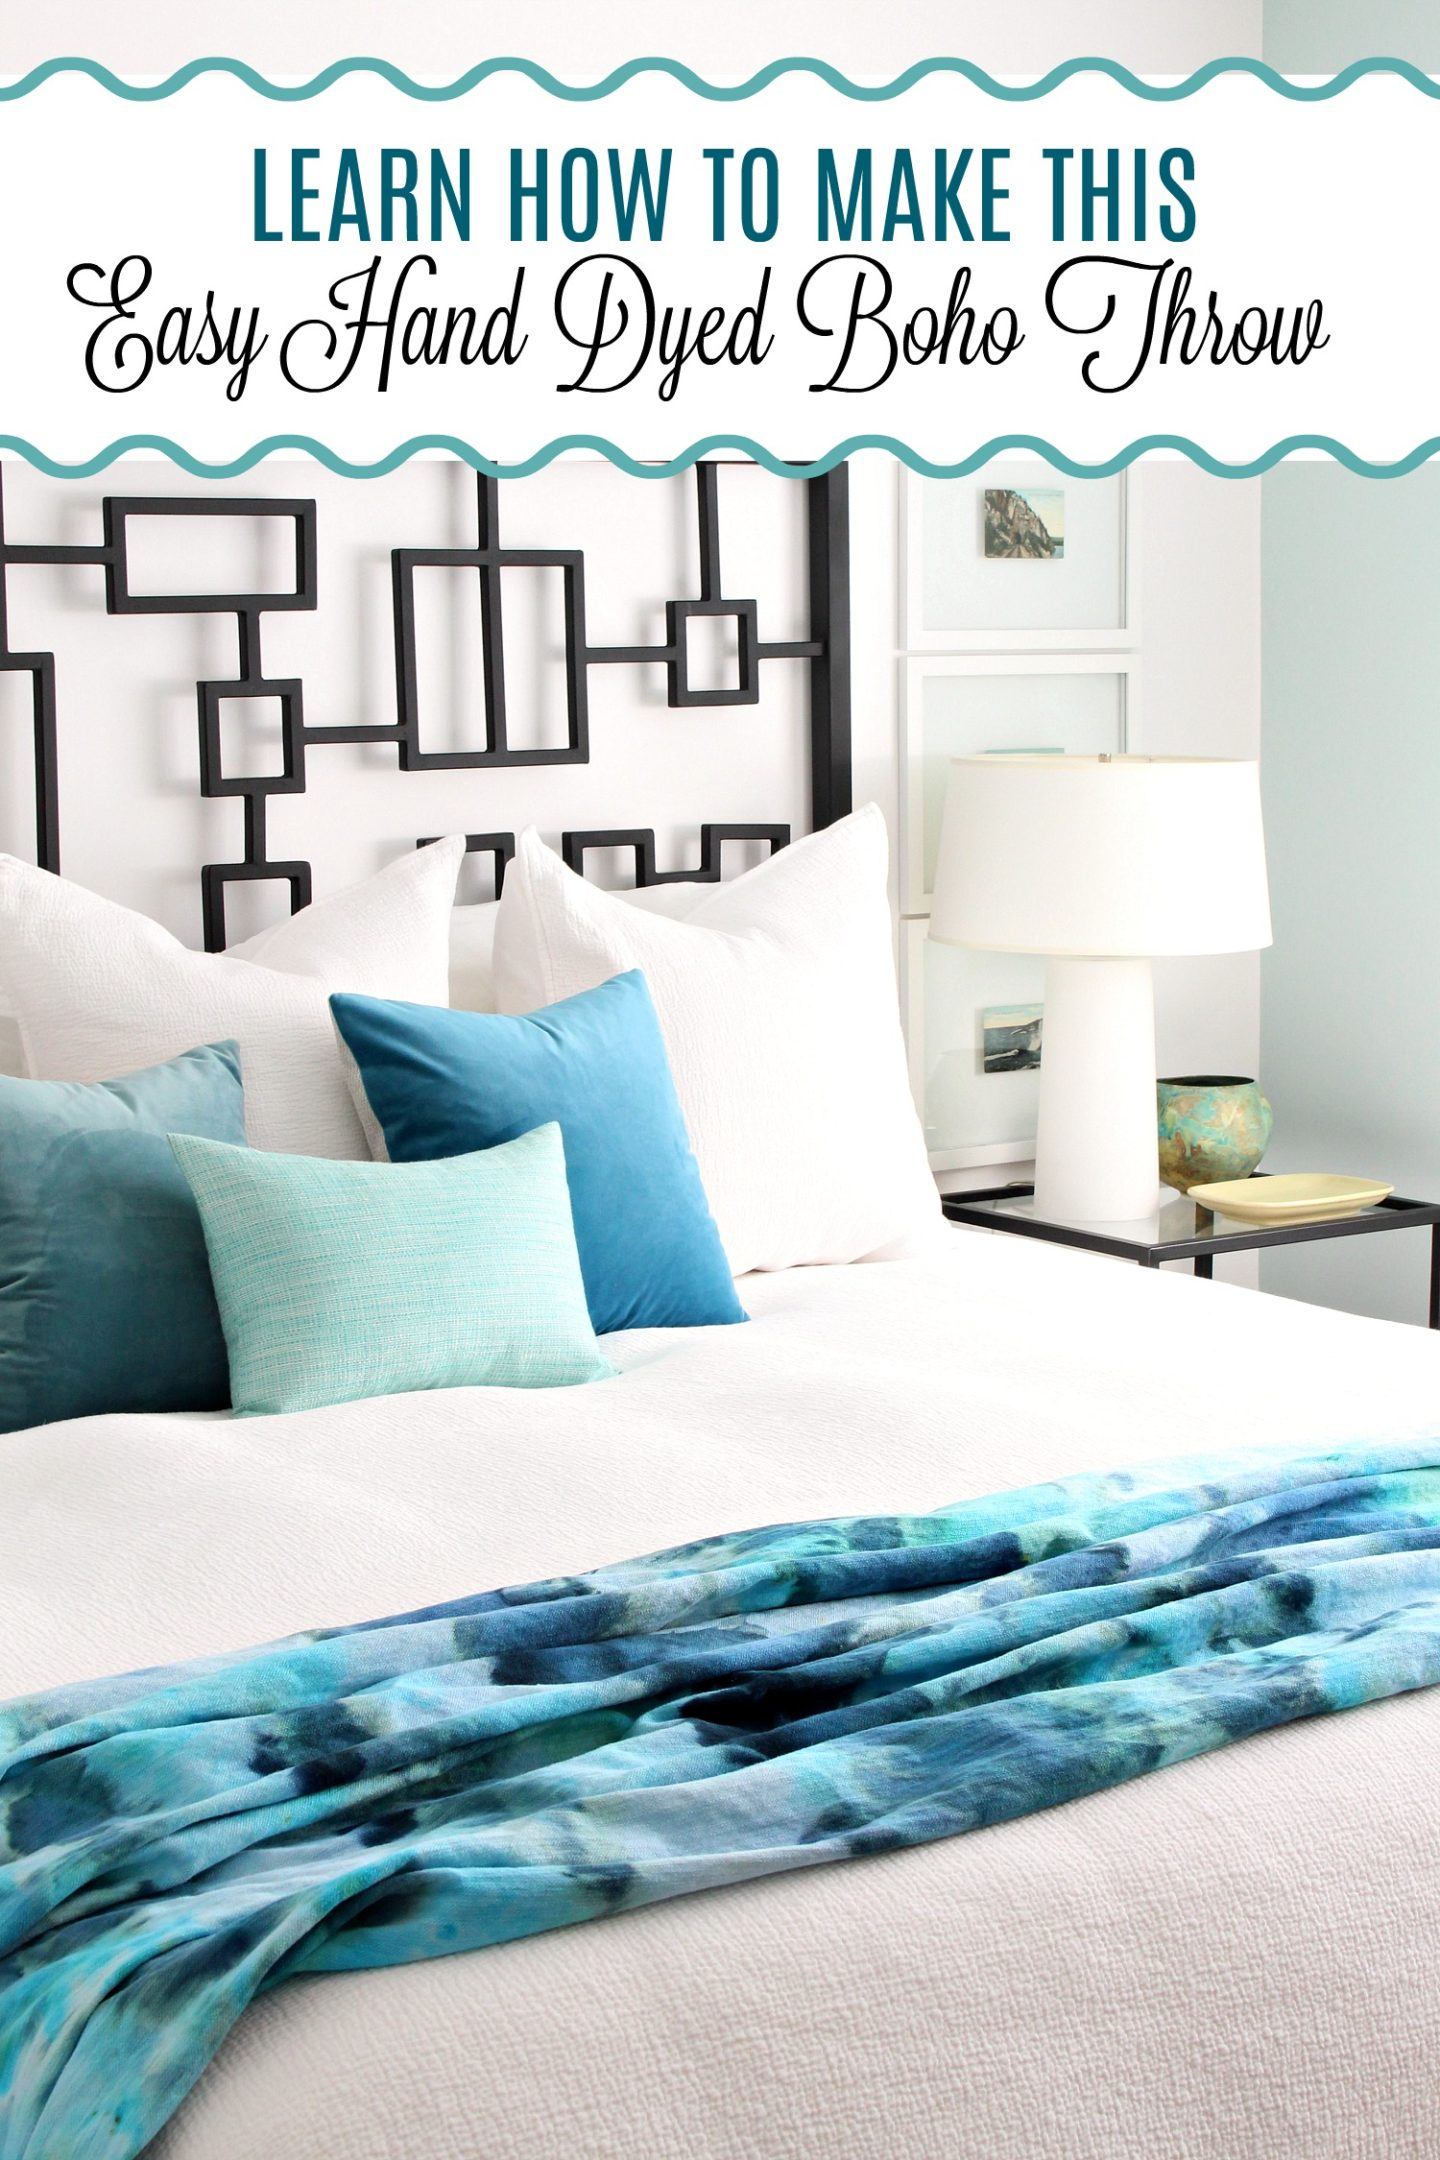 Beachy DIY Ice Dye Throw Blanket | How to Ice Dye #icedye #diydyeing #howtodyefabric #beachdecor #bohohomedecor #bluebedroom